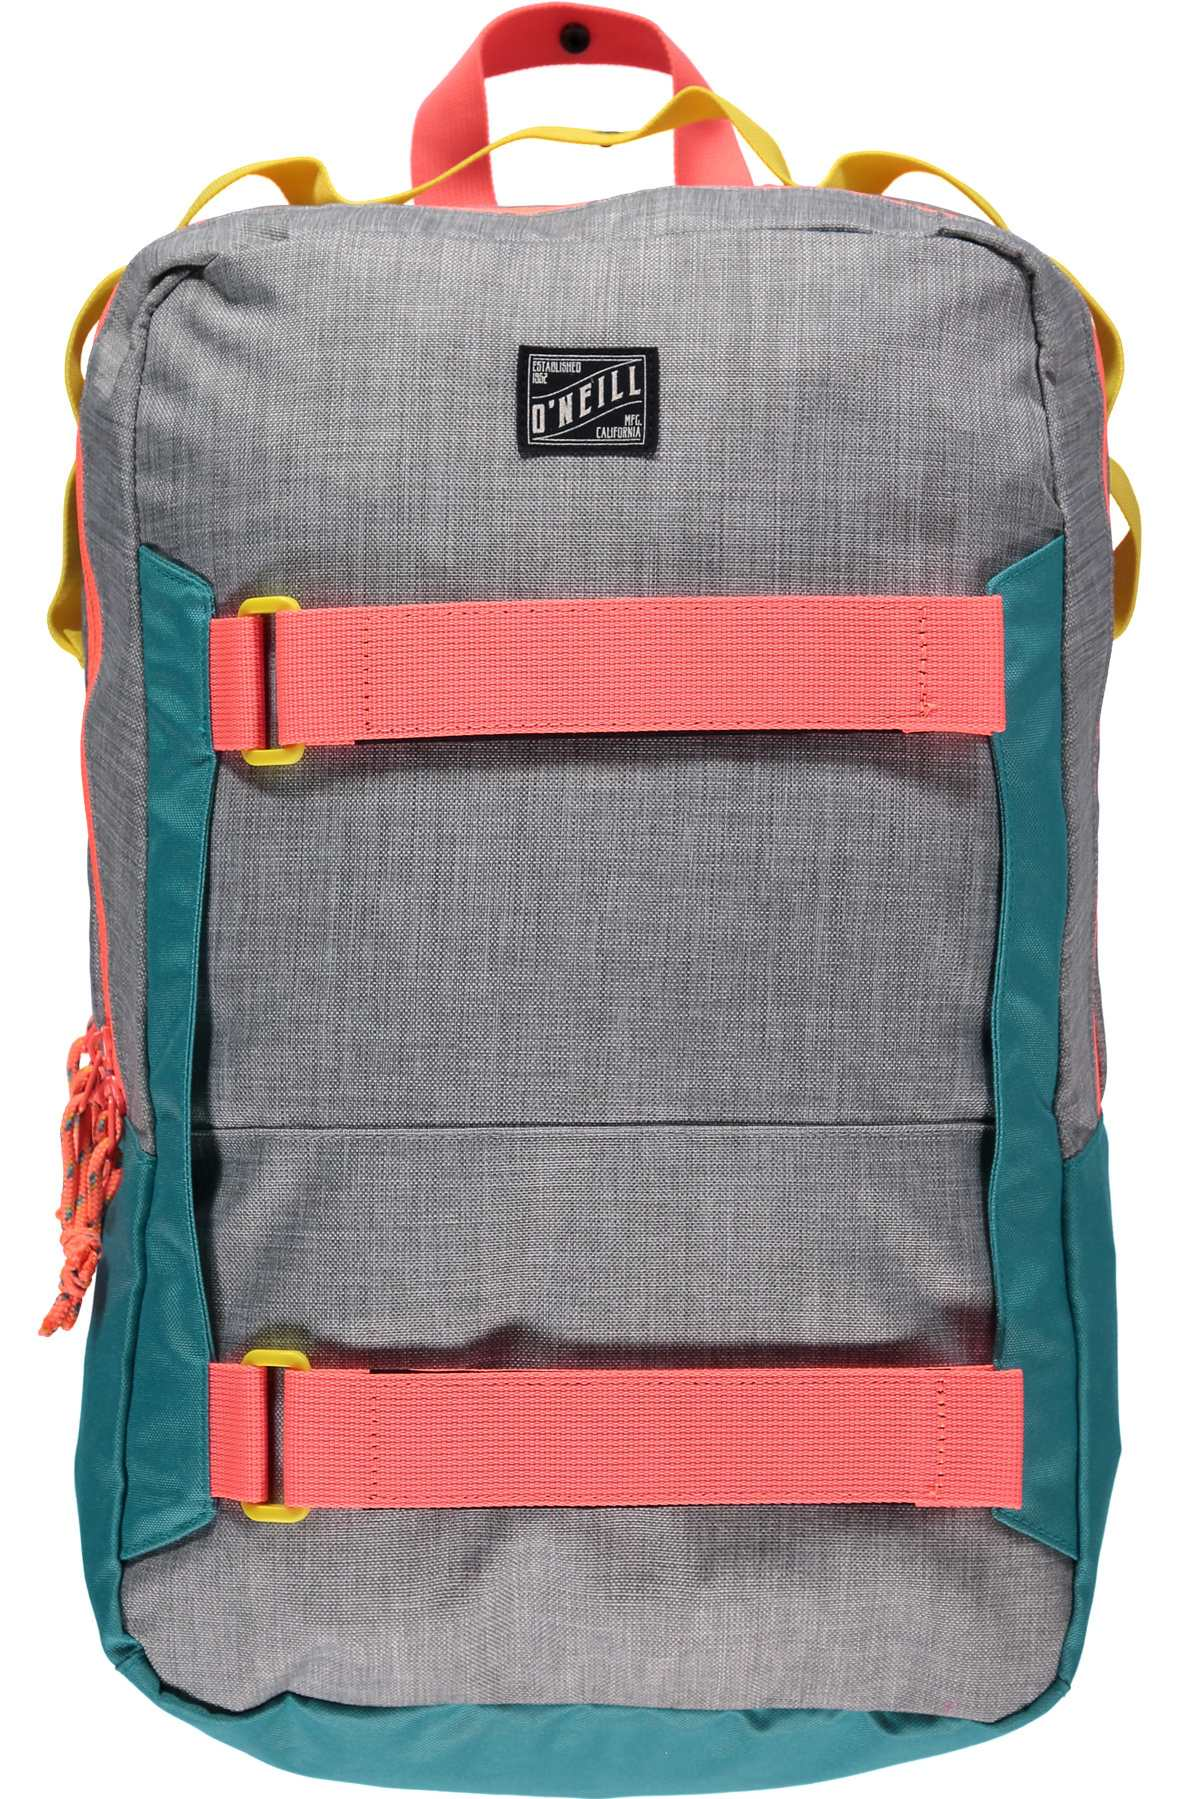 ee92adcff6 O Neill BM BOARDER PLUS BACKPACK